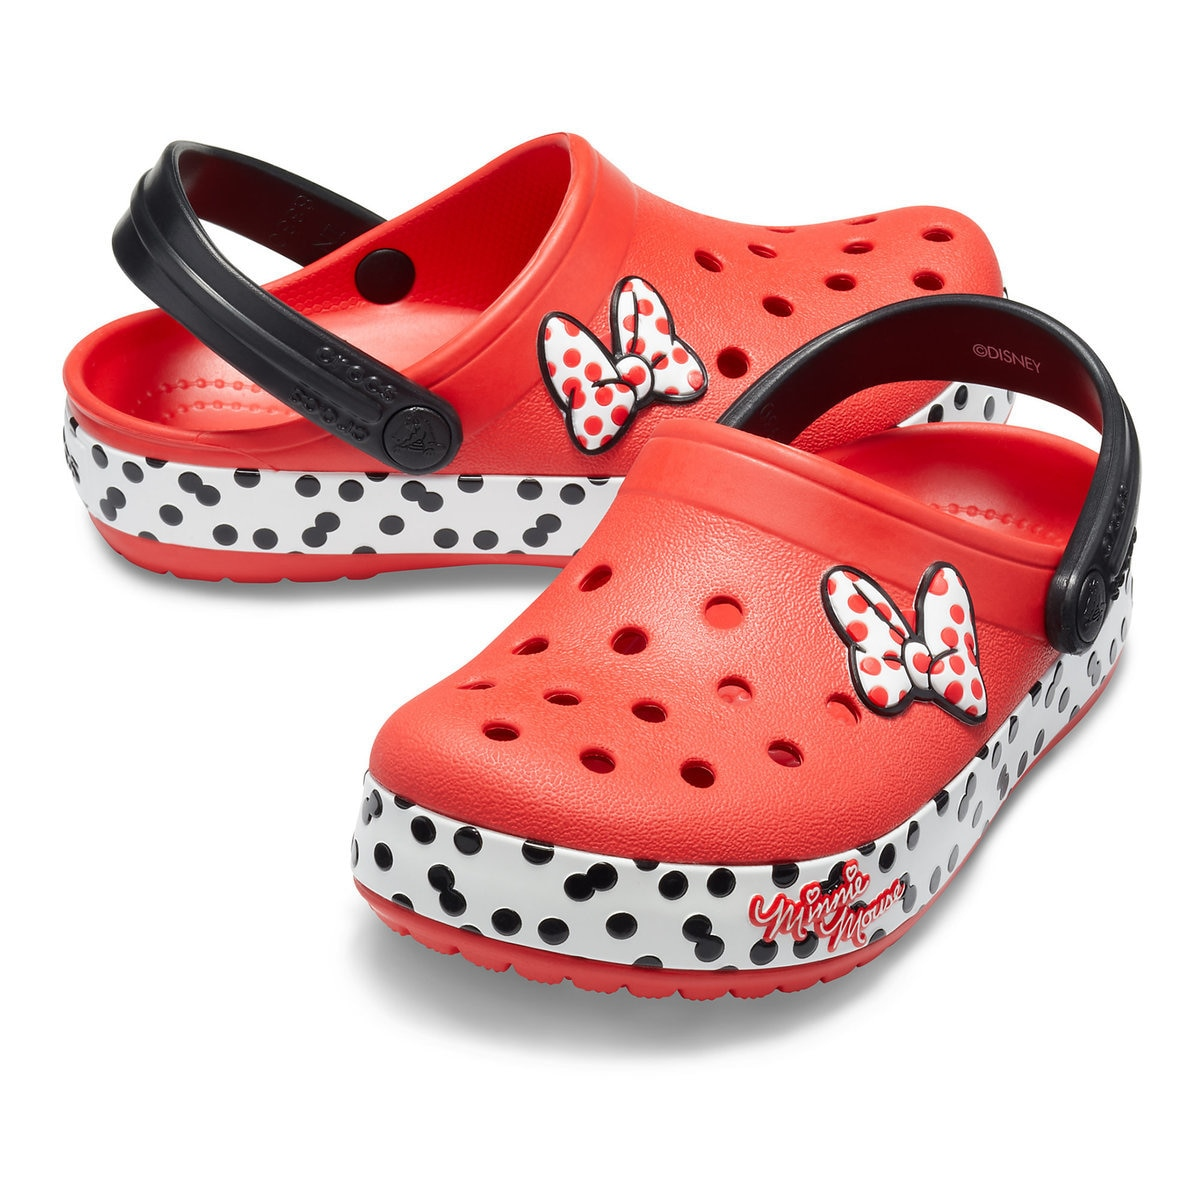 4e8e0c68c672 Minnie Mouse Crocband Clogs for Kids by Crocs